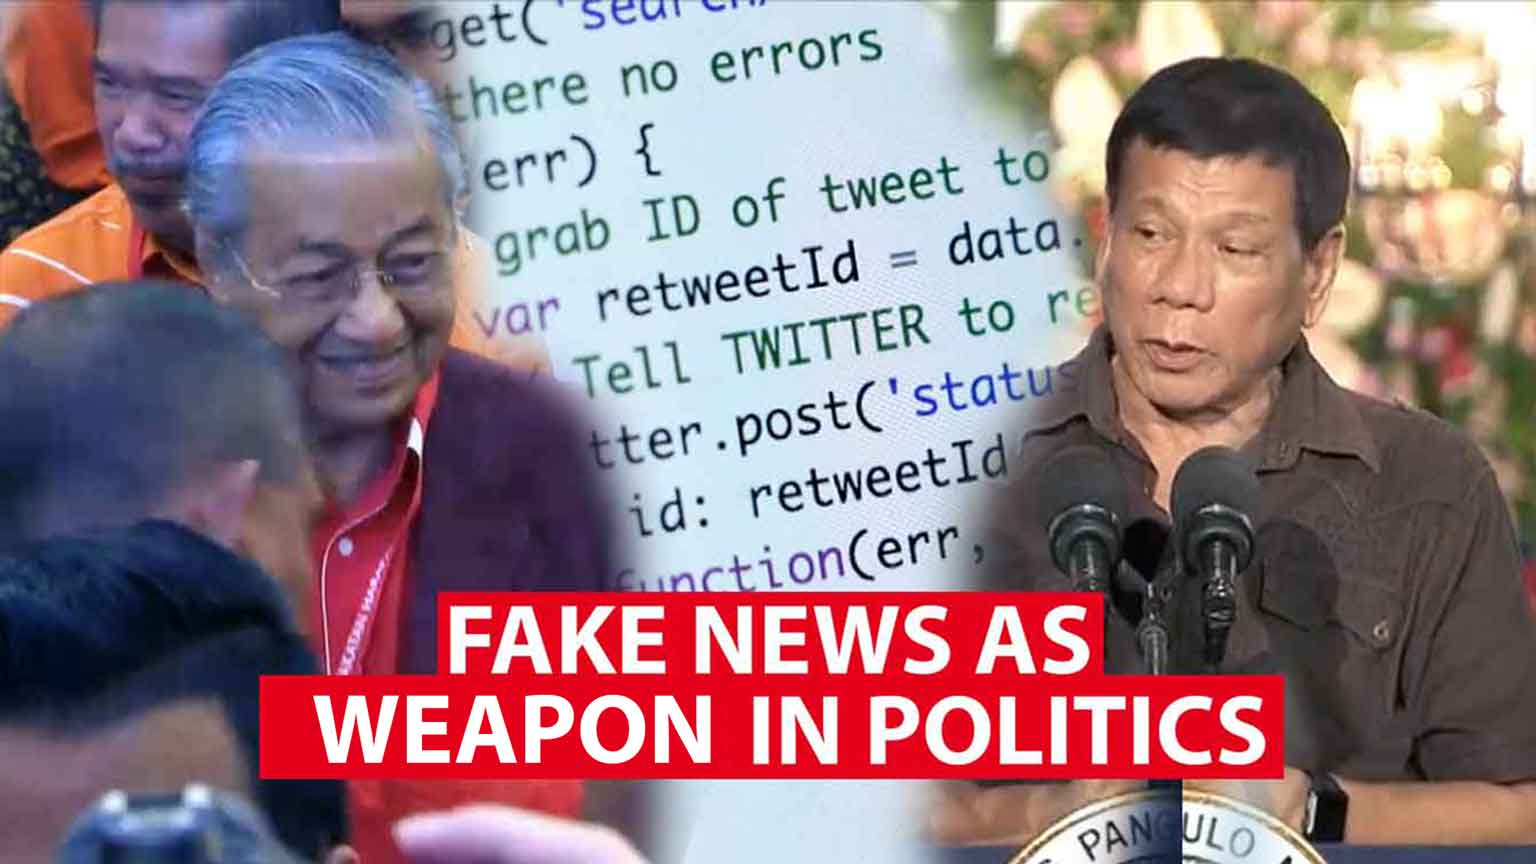 Fake news as weapon in politics